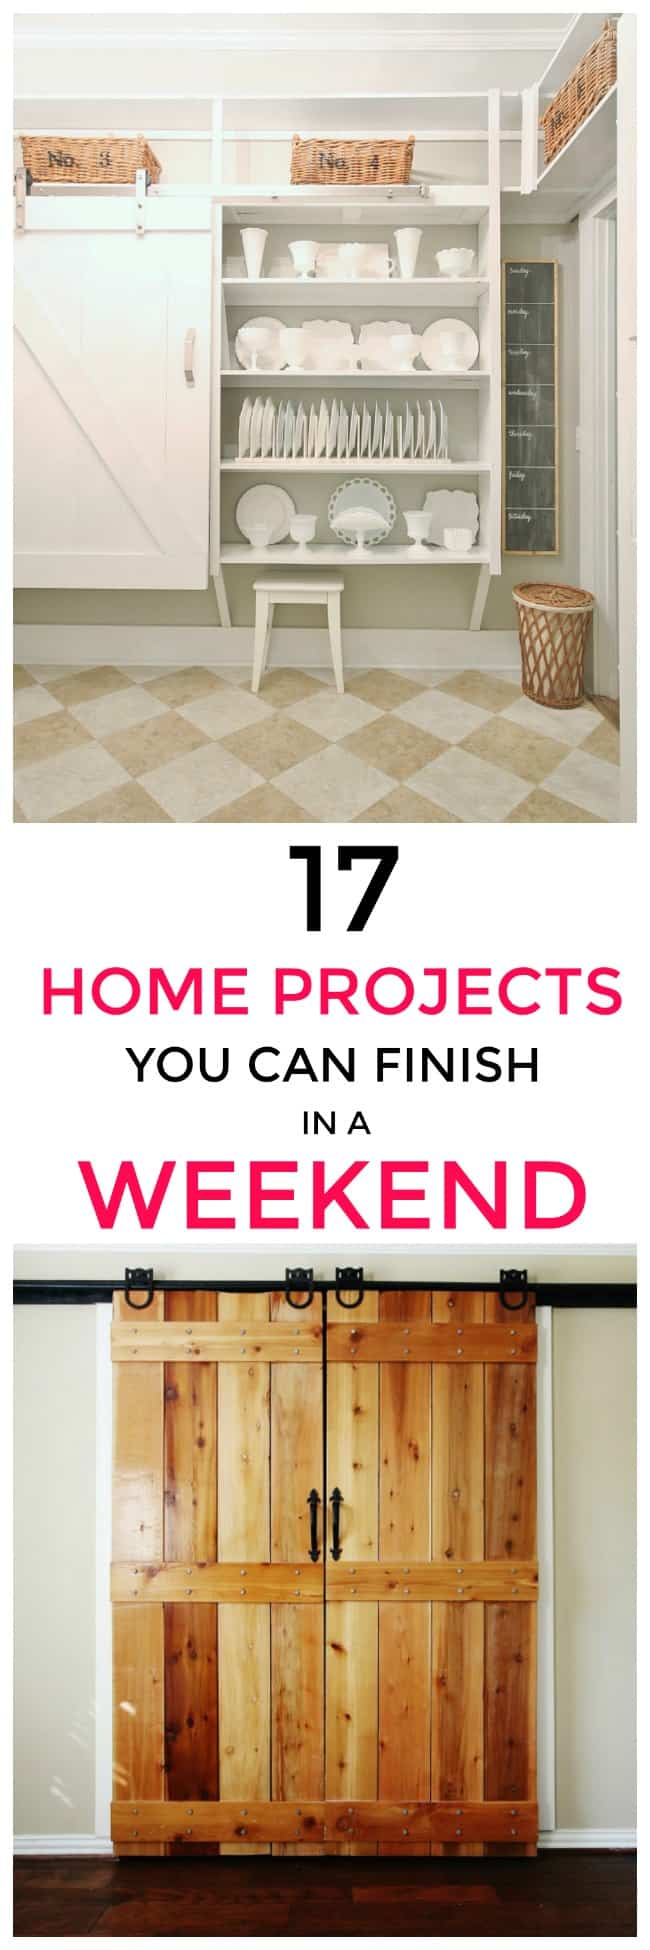 weekend projects promo graphics